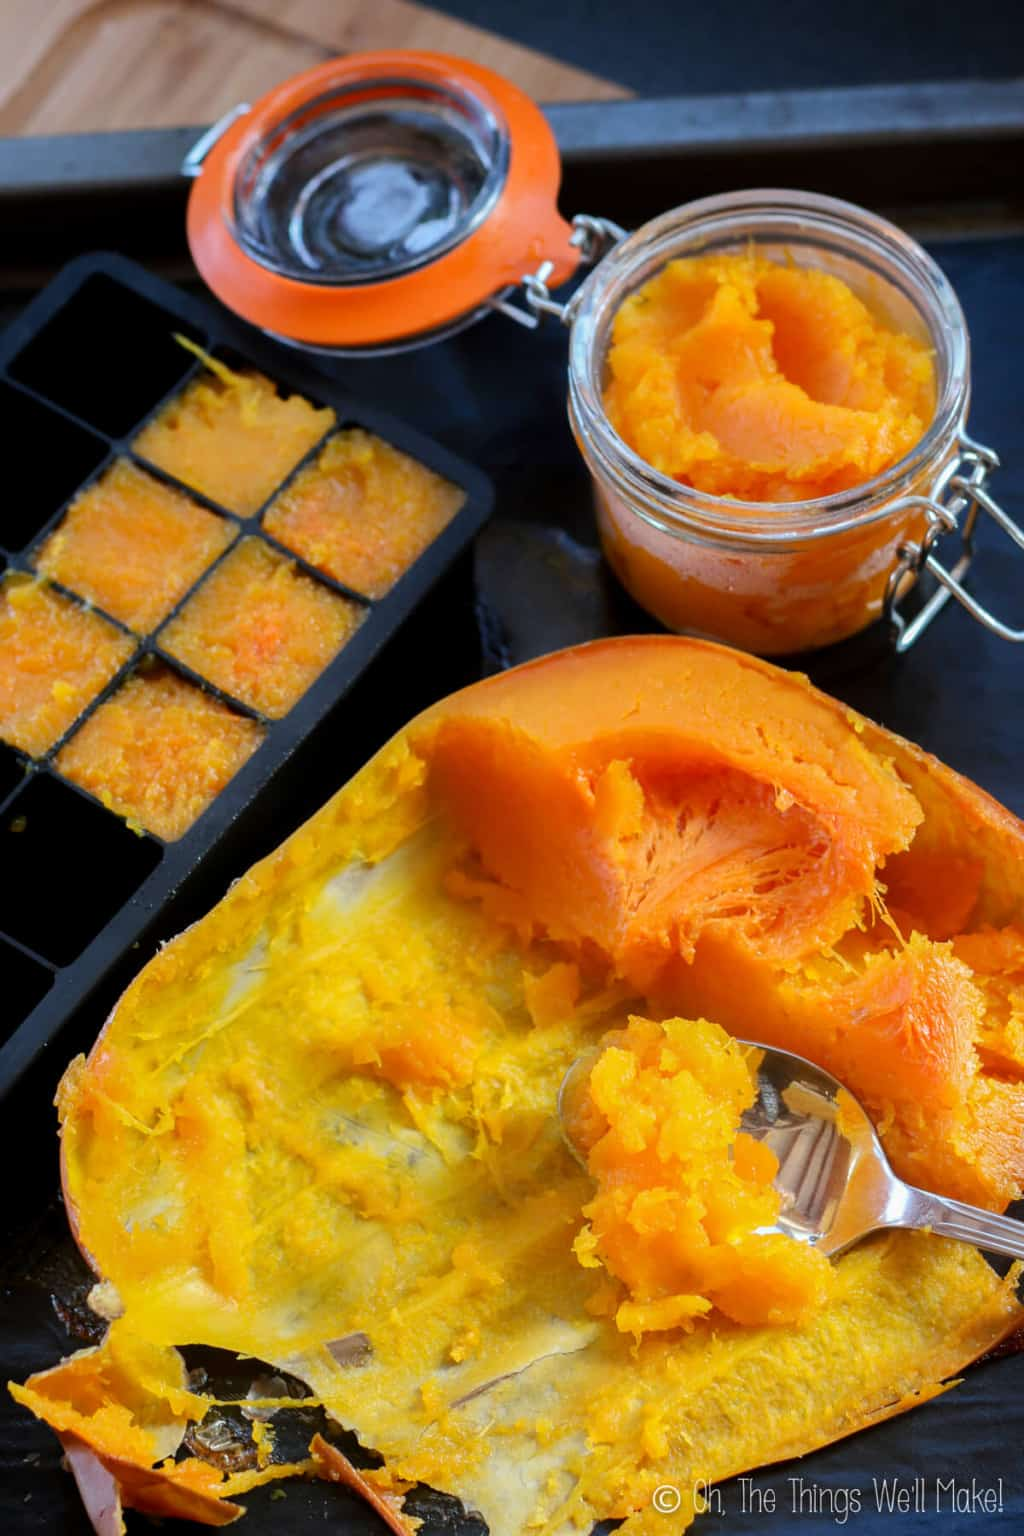 Top view of an orange baked pumpkin below a jar of homemade pumpkin puree and beside a black silicone ice cube tray filled with pumpkin puree for freezing.